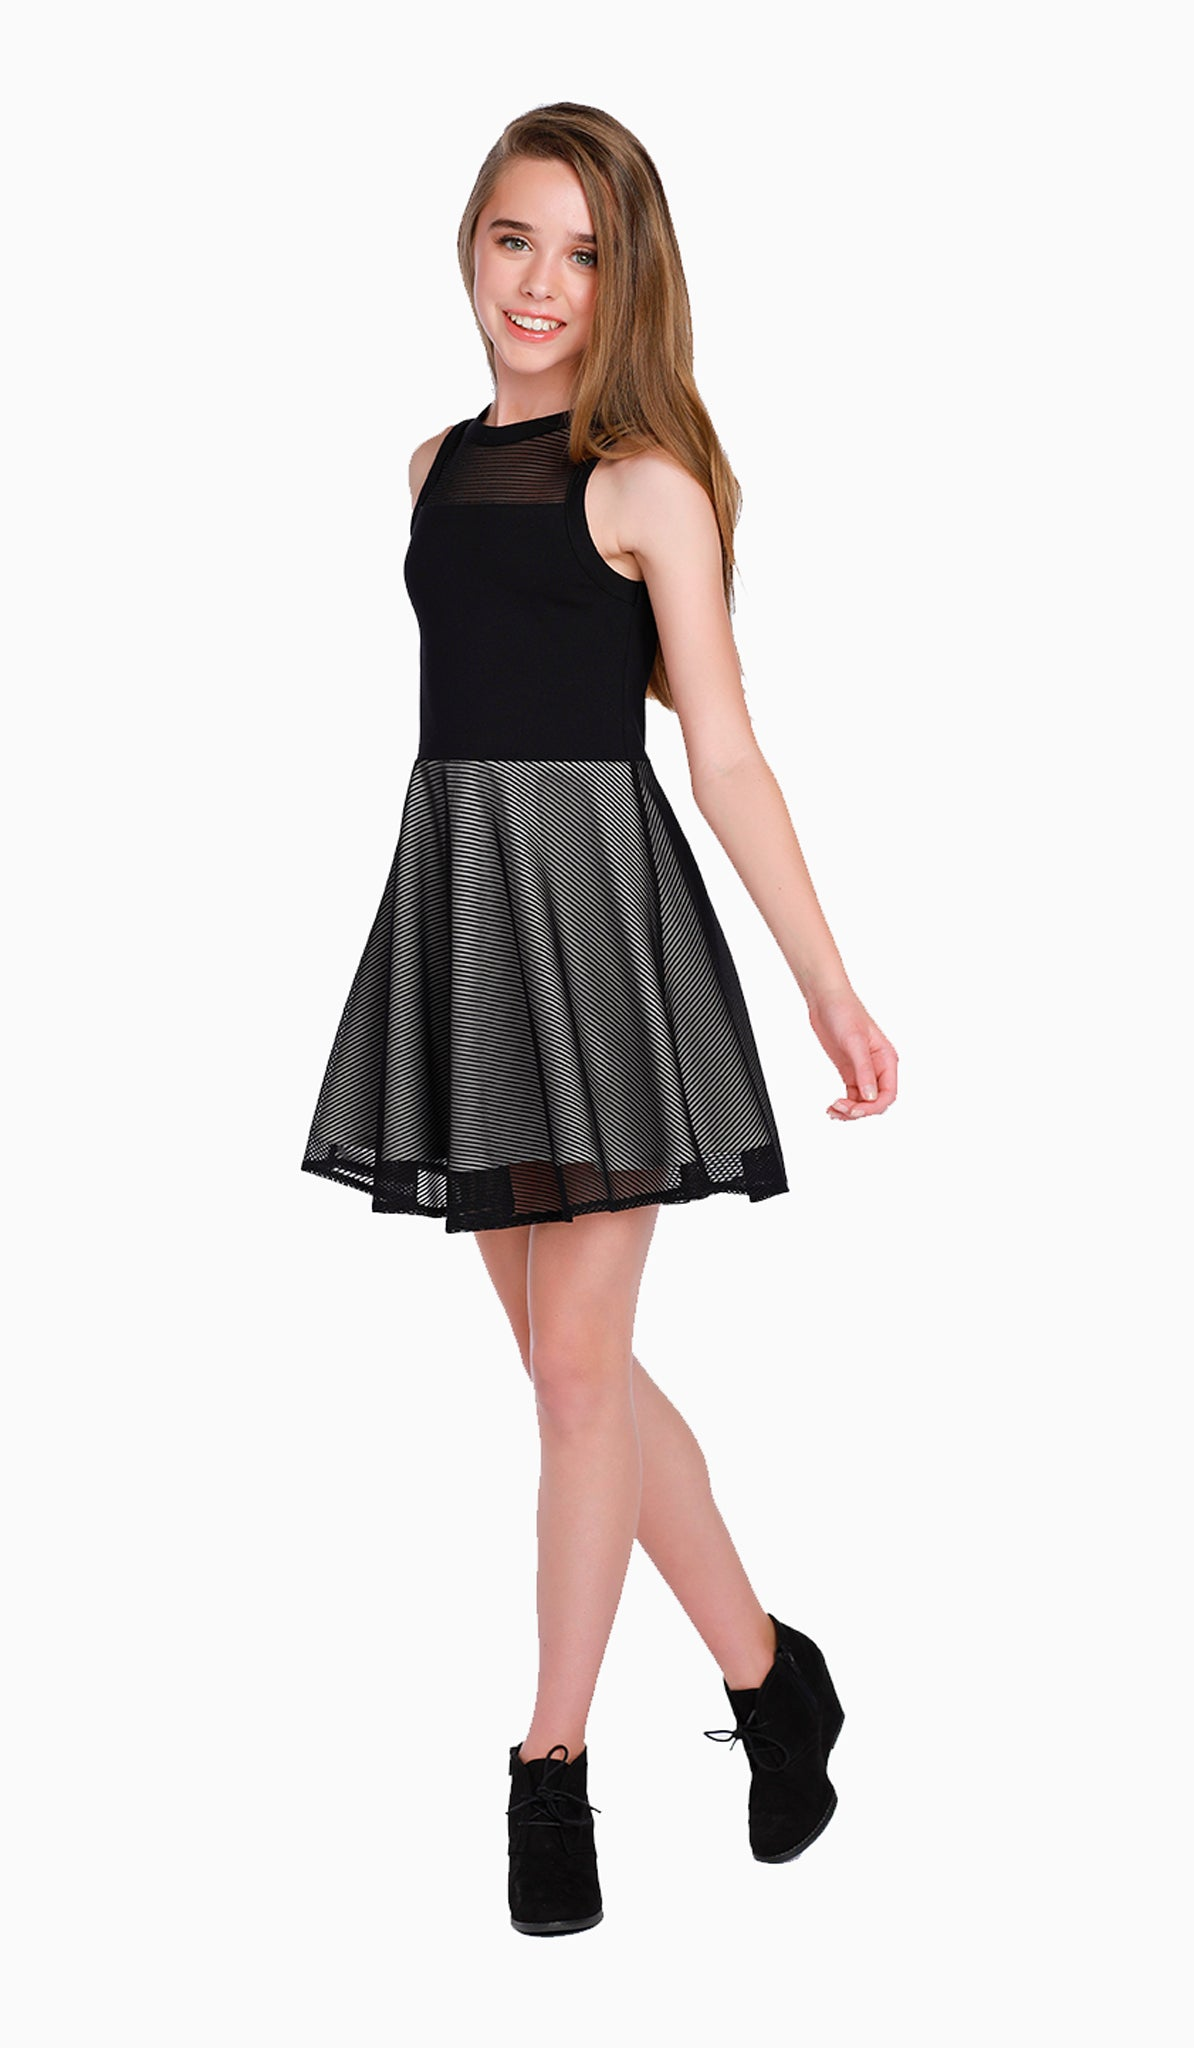 THE EDEN DRESS - Sallymiller.com - [variant title] - | Event & Party Dresses for Tween Girls & Juniors | Weddings Dresses, Bat Mitzvah Dresses, Sweet Sixteen Dresses, Graduation Dresses, Birthday Party Dresses, Bar Mitzvah Dresses, Cotillion Dresses